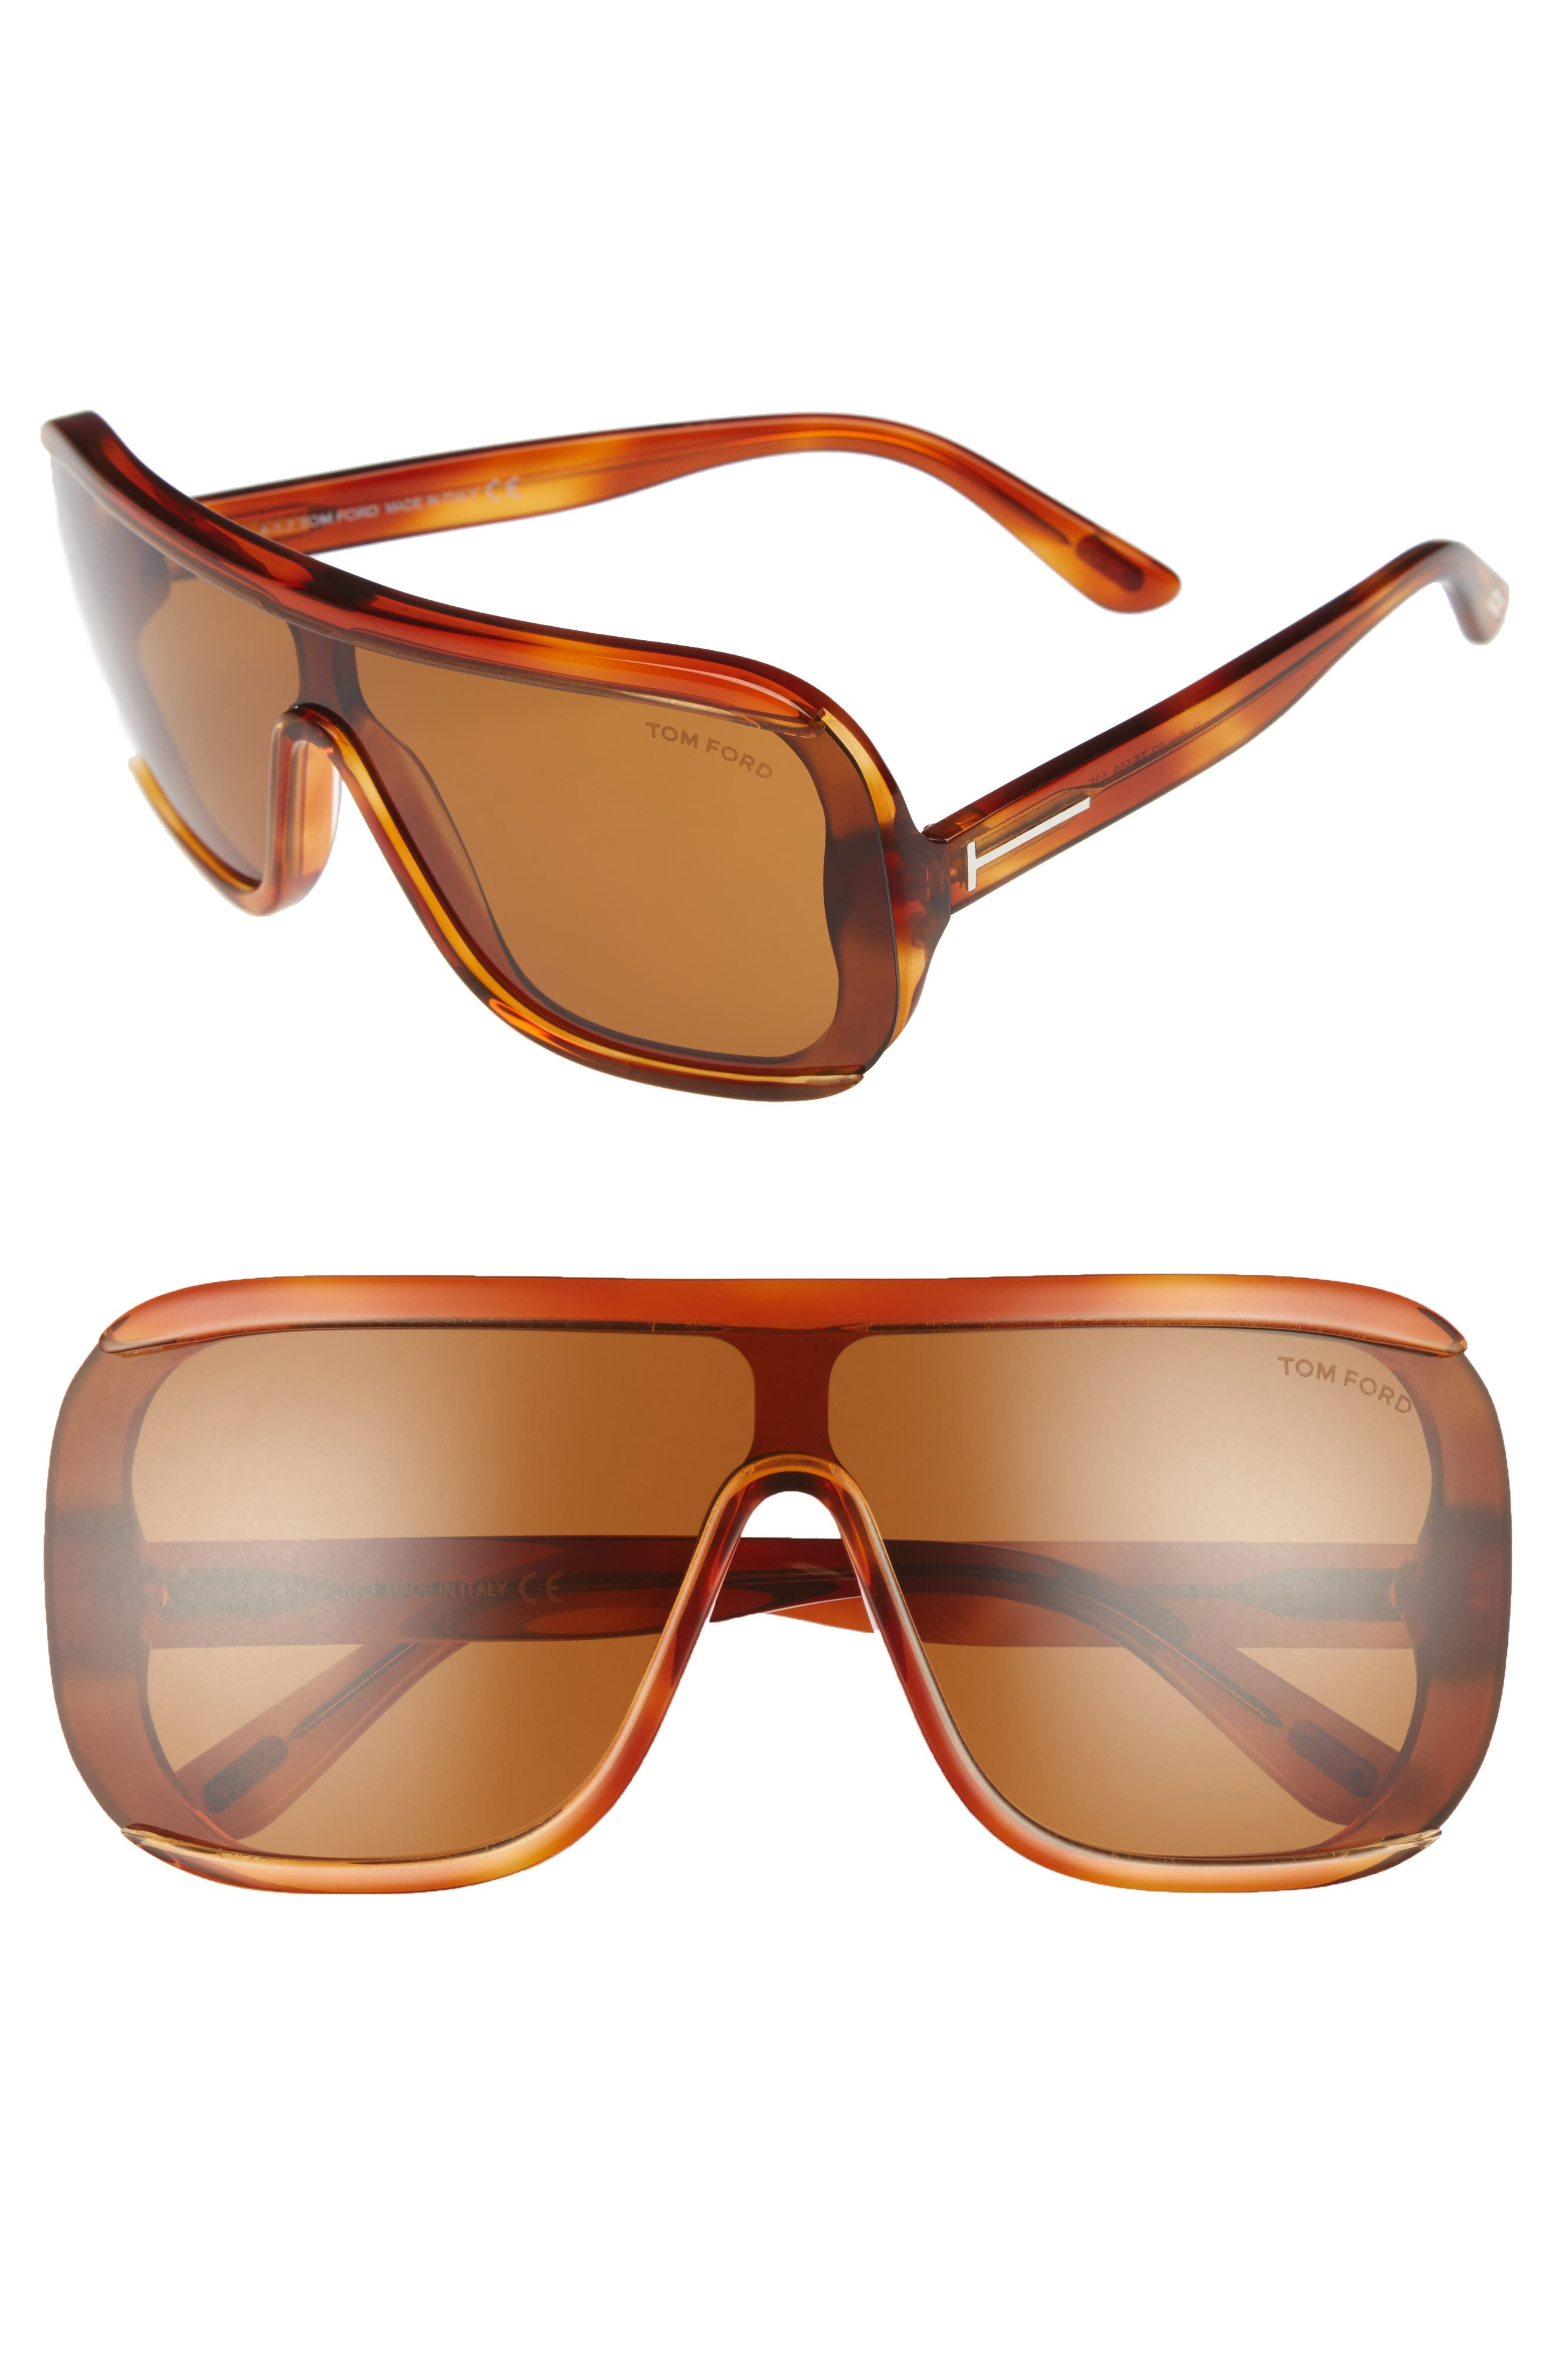 Tom Ford Porfirio 135mm One-Piece Lens Shield Sunglasses